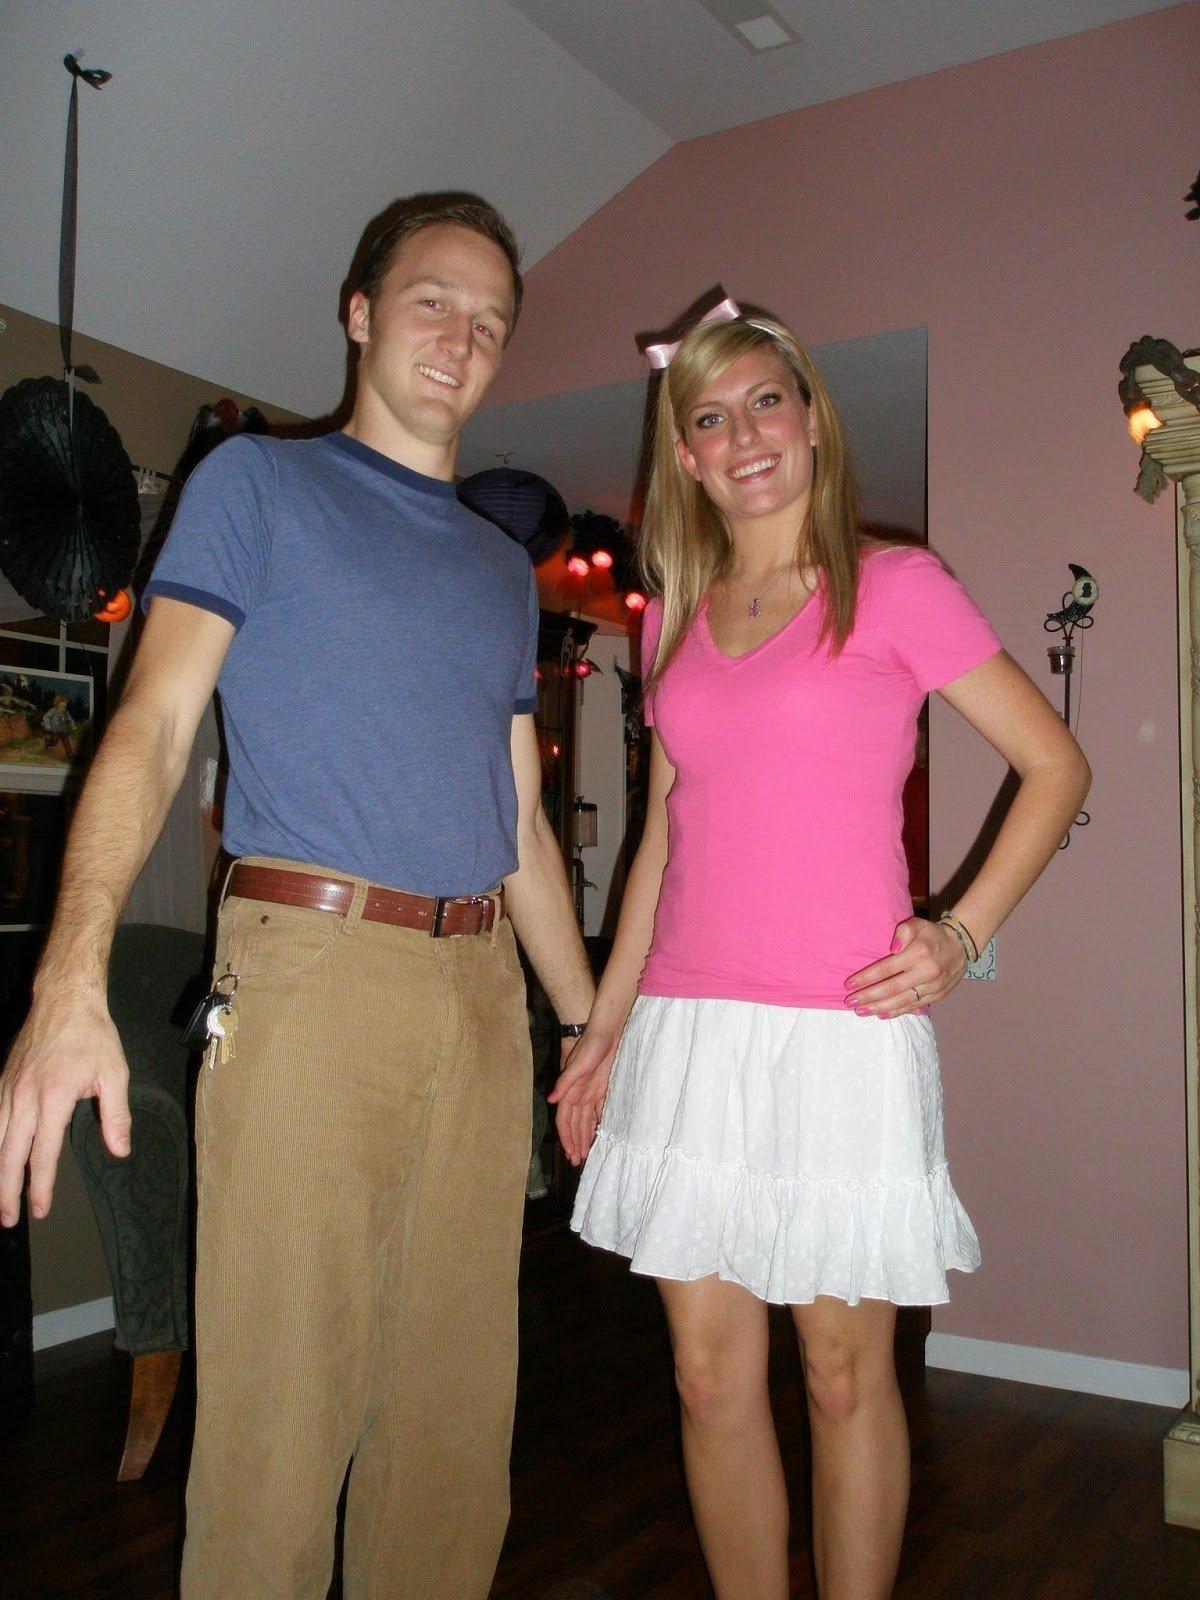 10 Ideal Couples Halloween Costume Ideas 2013 katie in kansas diy couples halloween costume ideas 4 2021